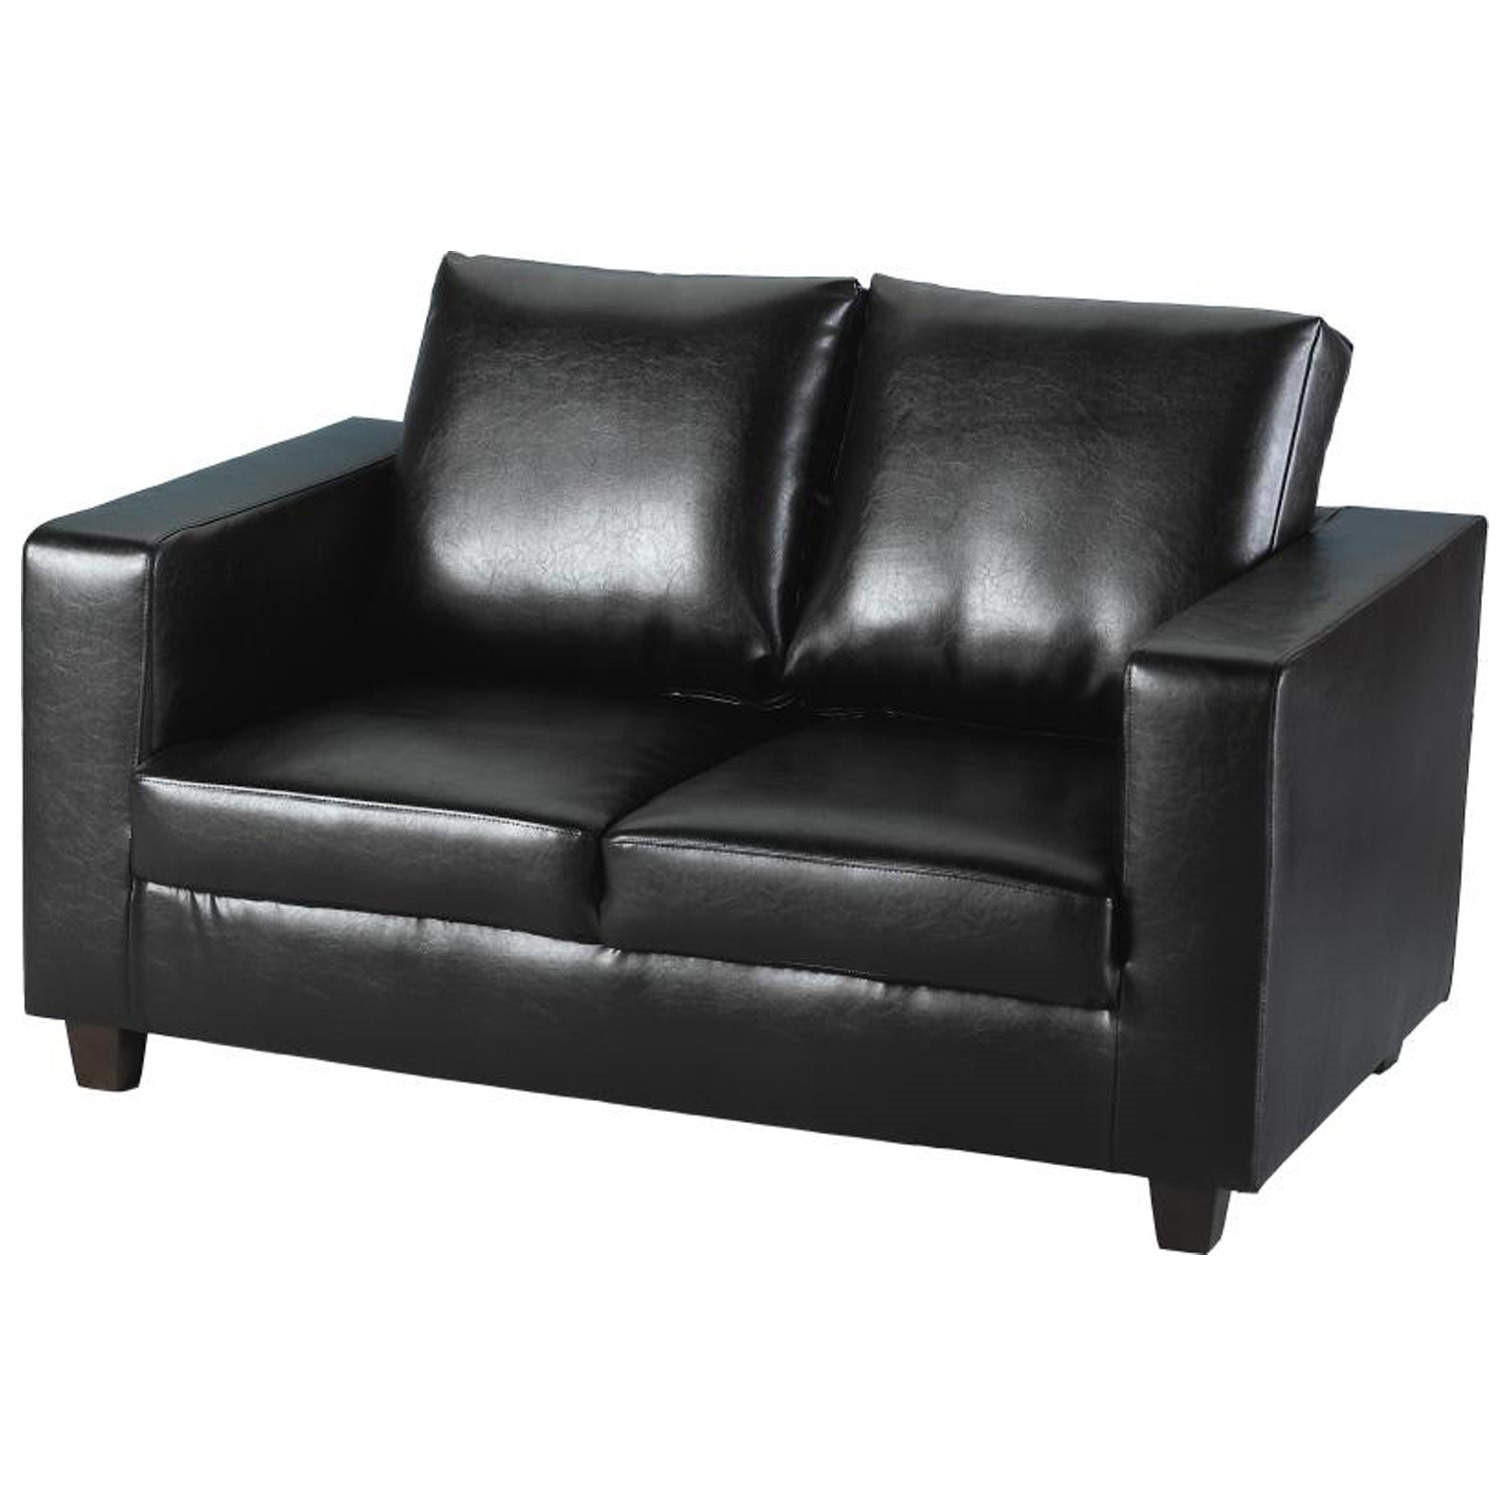 Seconique Tempo 2 Seater Sofa in Black